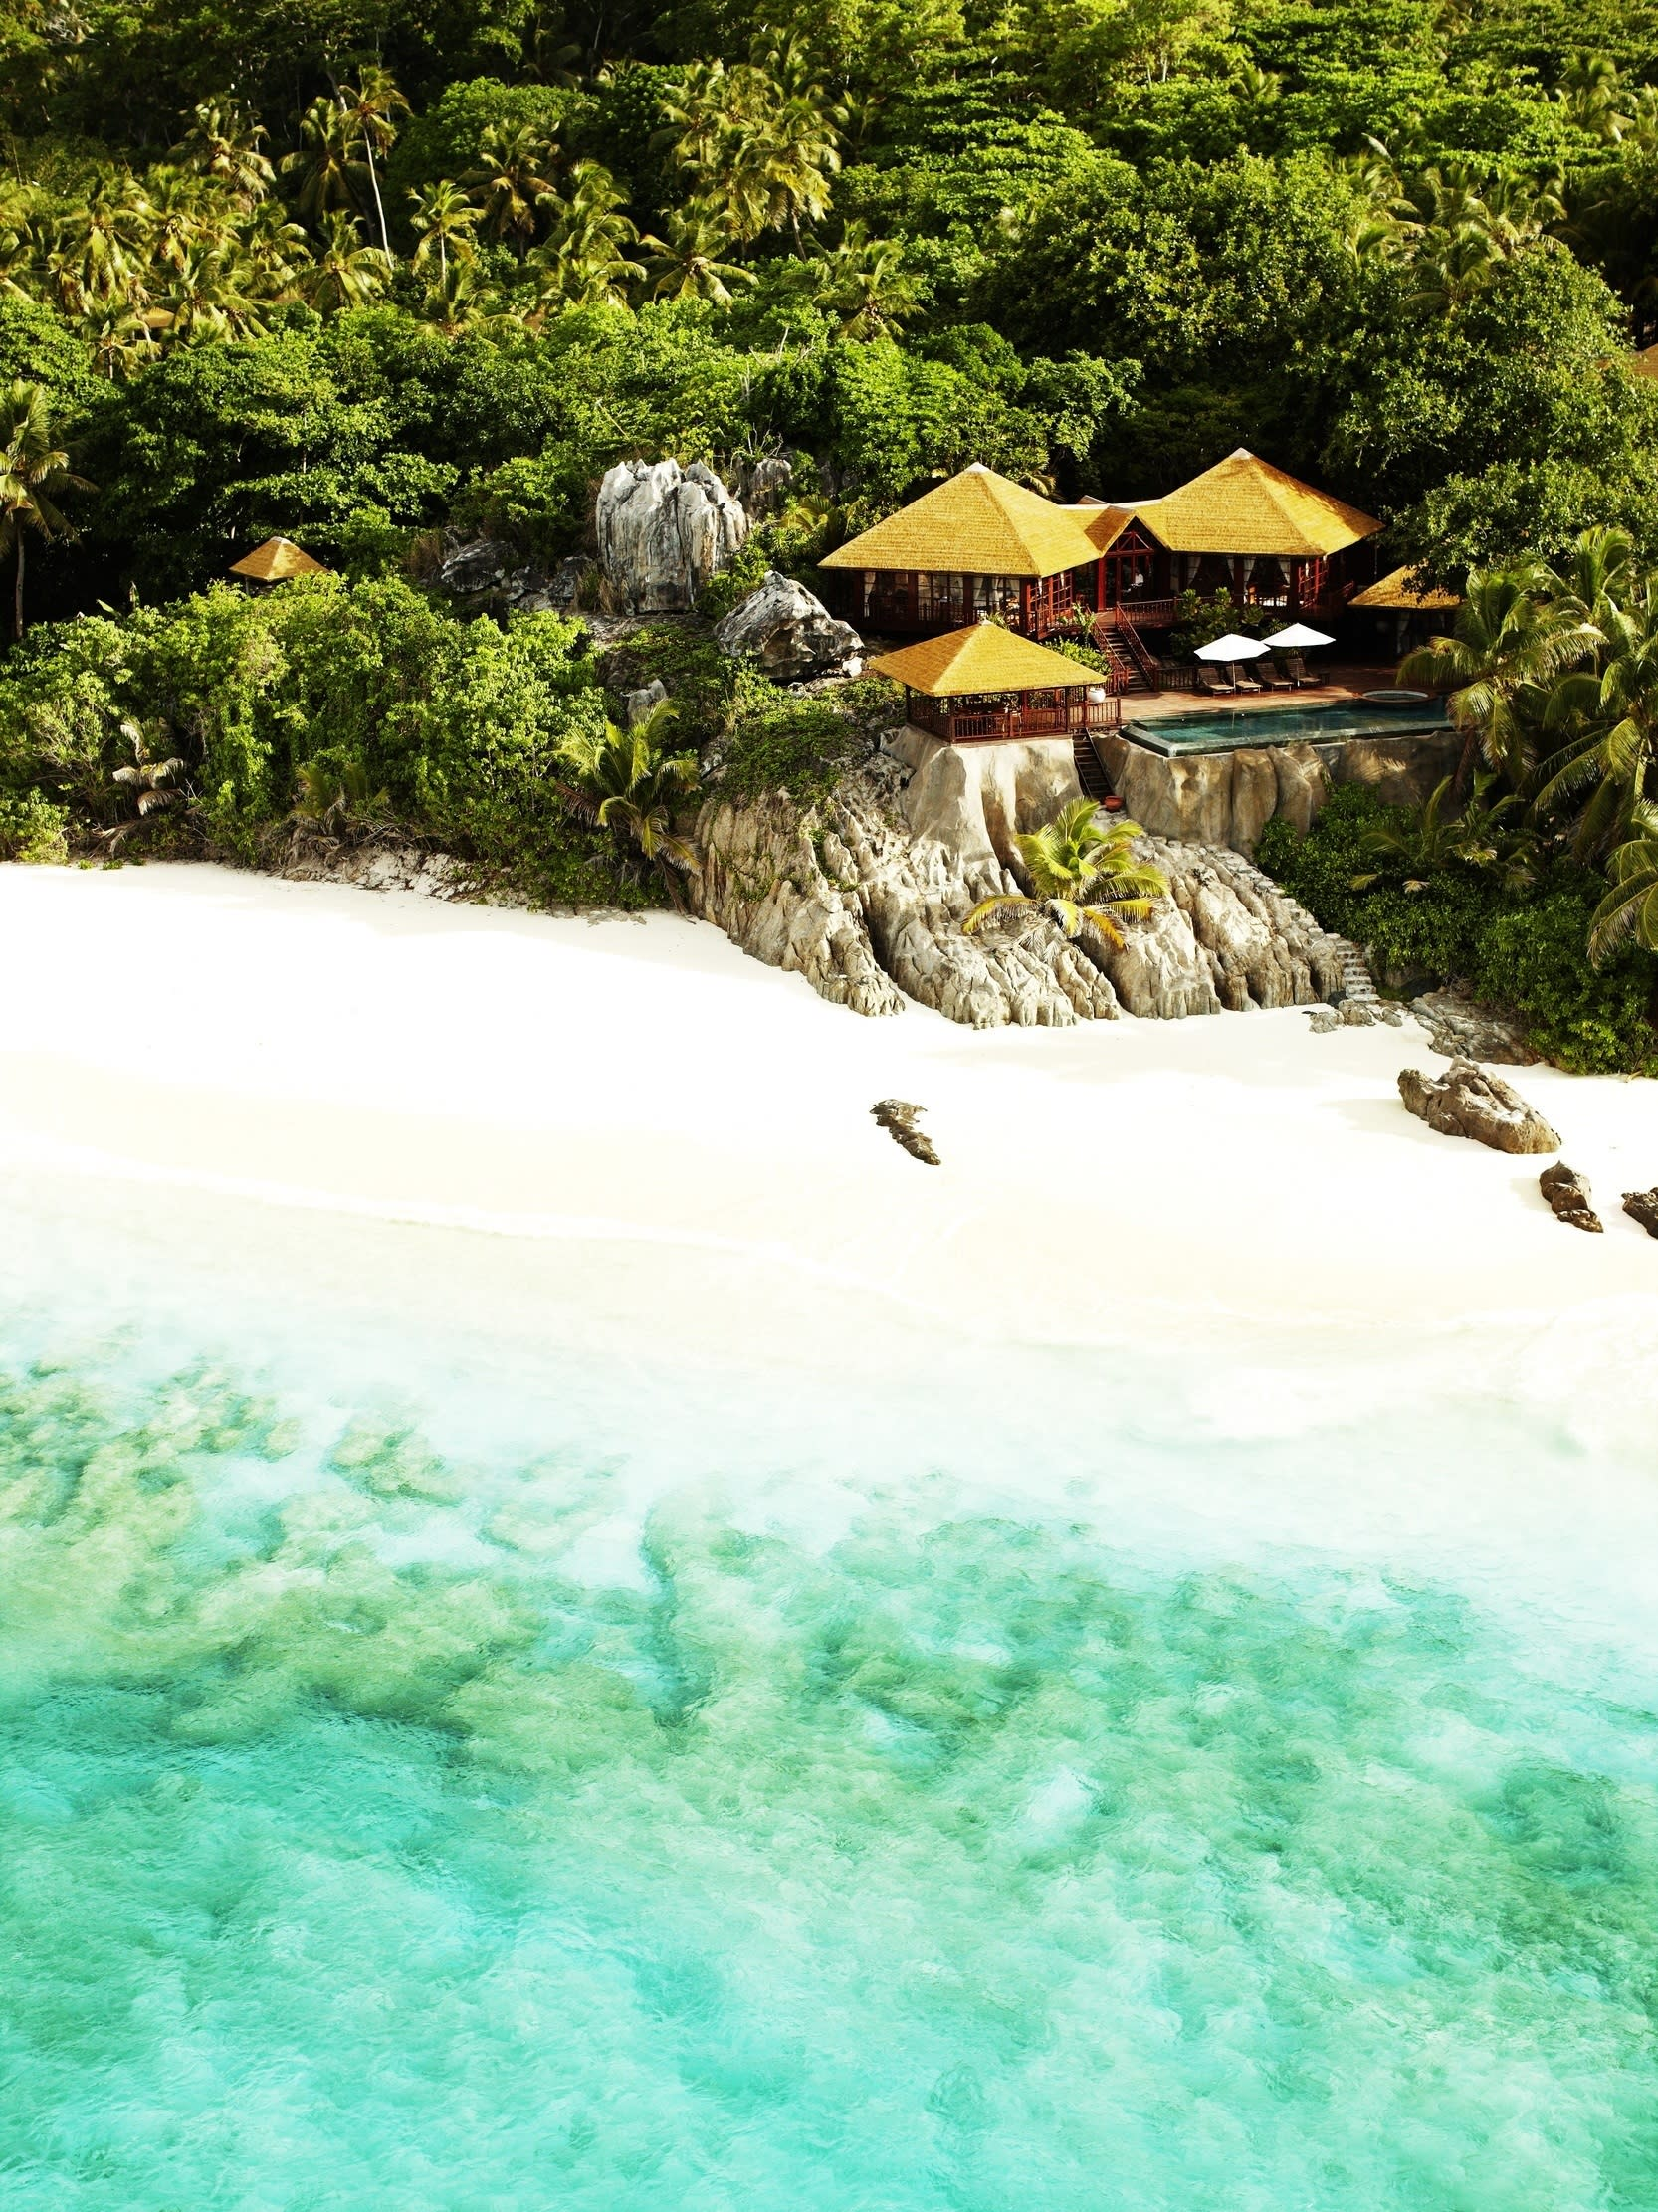 """Famous for its beauty and glorious beaches, <a href=""""http://www.fregate.com/"""" target=""""_blank"""">Fregate Island Private</a> has seven private beaches with their own unique character and can be reserved simply with a 'Beach Occupied' sign. The luxury retreat in the Seychelles occupies an entire private island in the middle of the turquoise Indian Ocean. Beautifully crafted and nestled into the coastline, its 16 residences are naturally secluded – all have their own luxurious terrace, large private infinity pool and Jacuzzi. The resort is also a jewel of conservation in the Seychelles: it is home to the second largest population of Giant Aldabra Land Tortoises and is the nesting home to endangered turtle species. Book a Private Pool Residence from €4,400 per residence per night on an all-inclusive basis."""